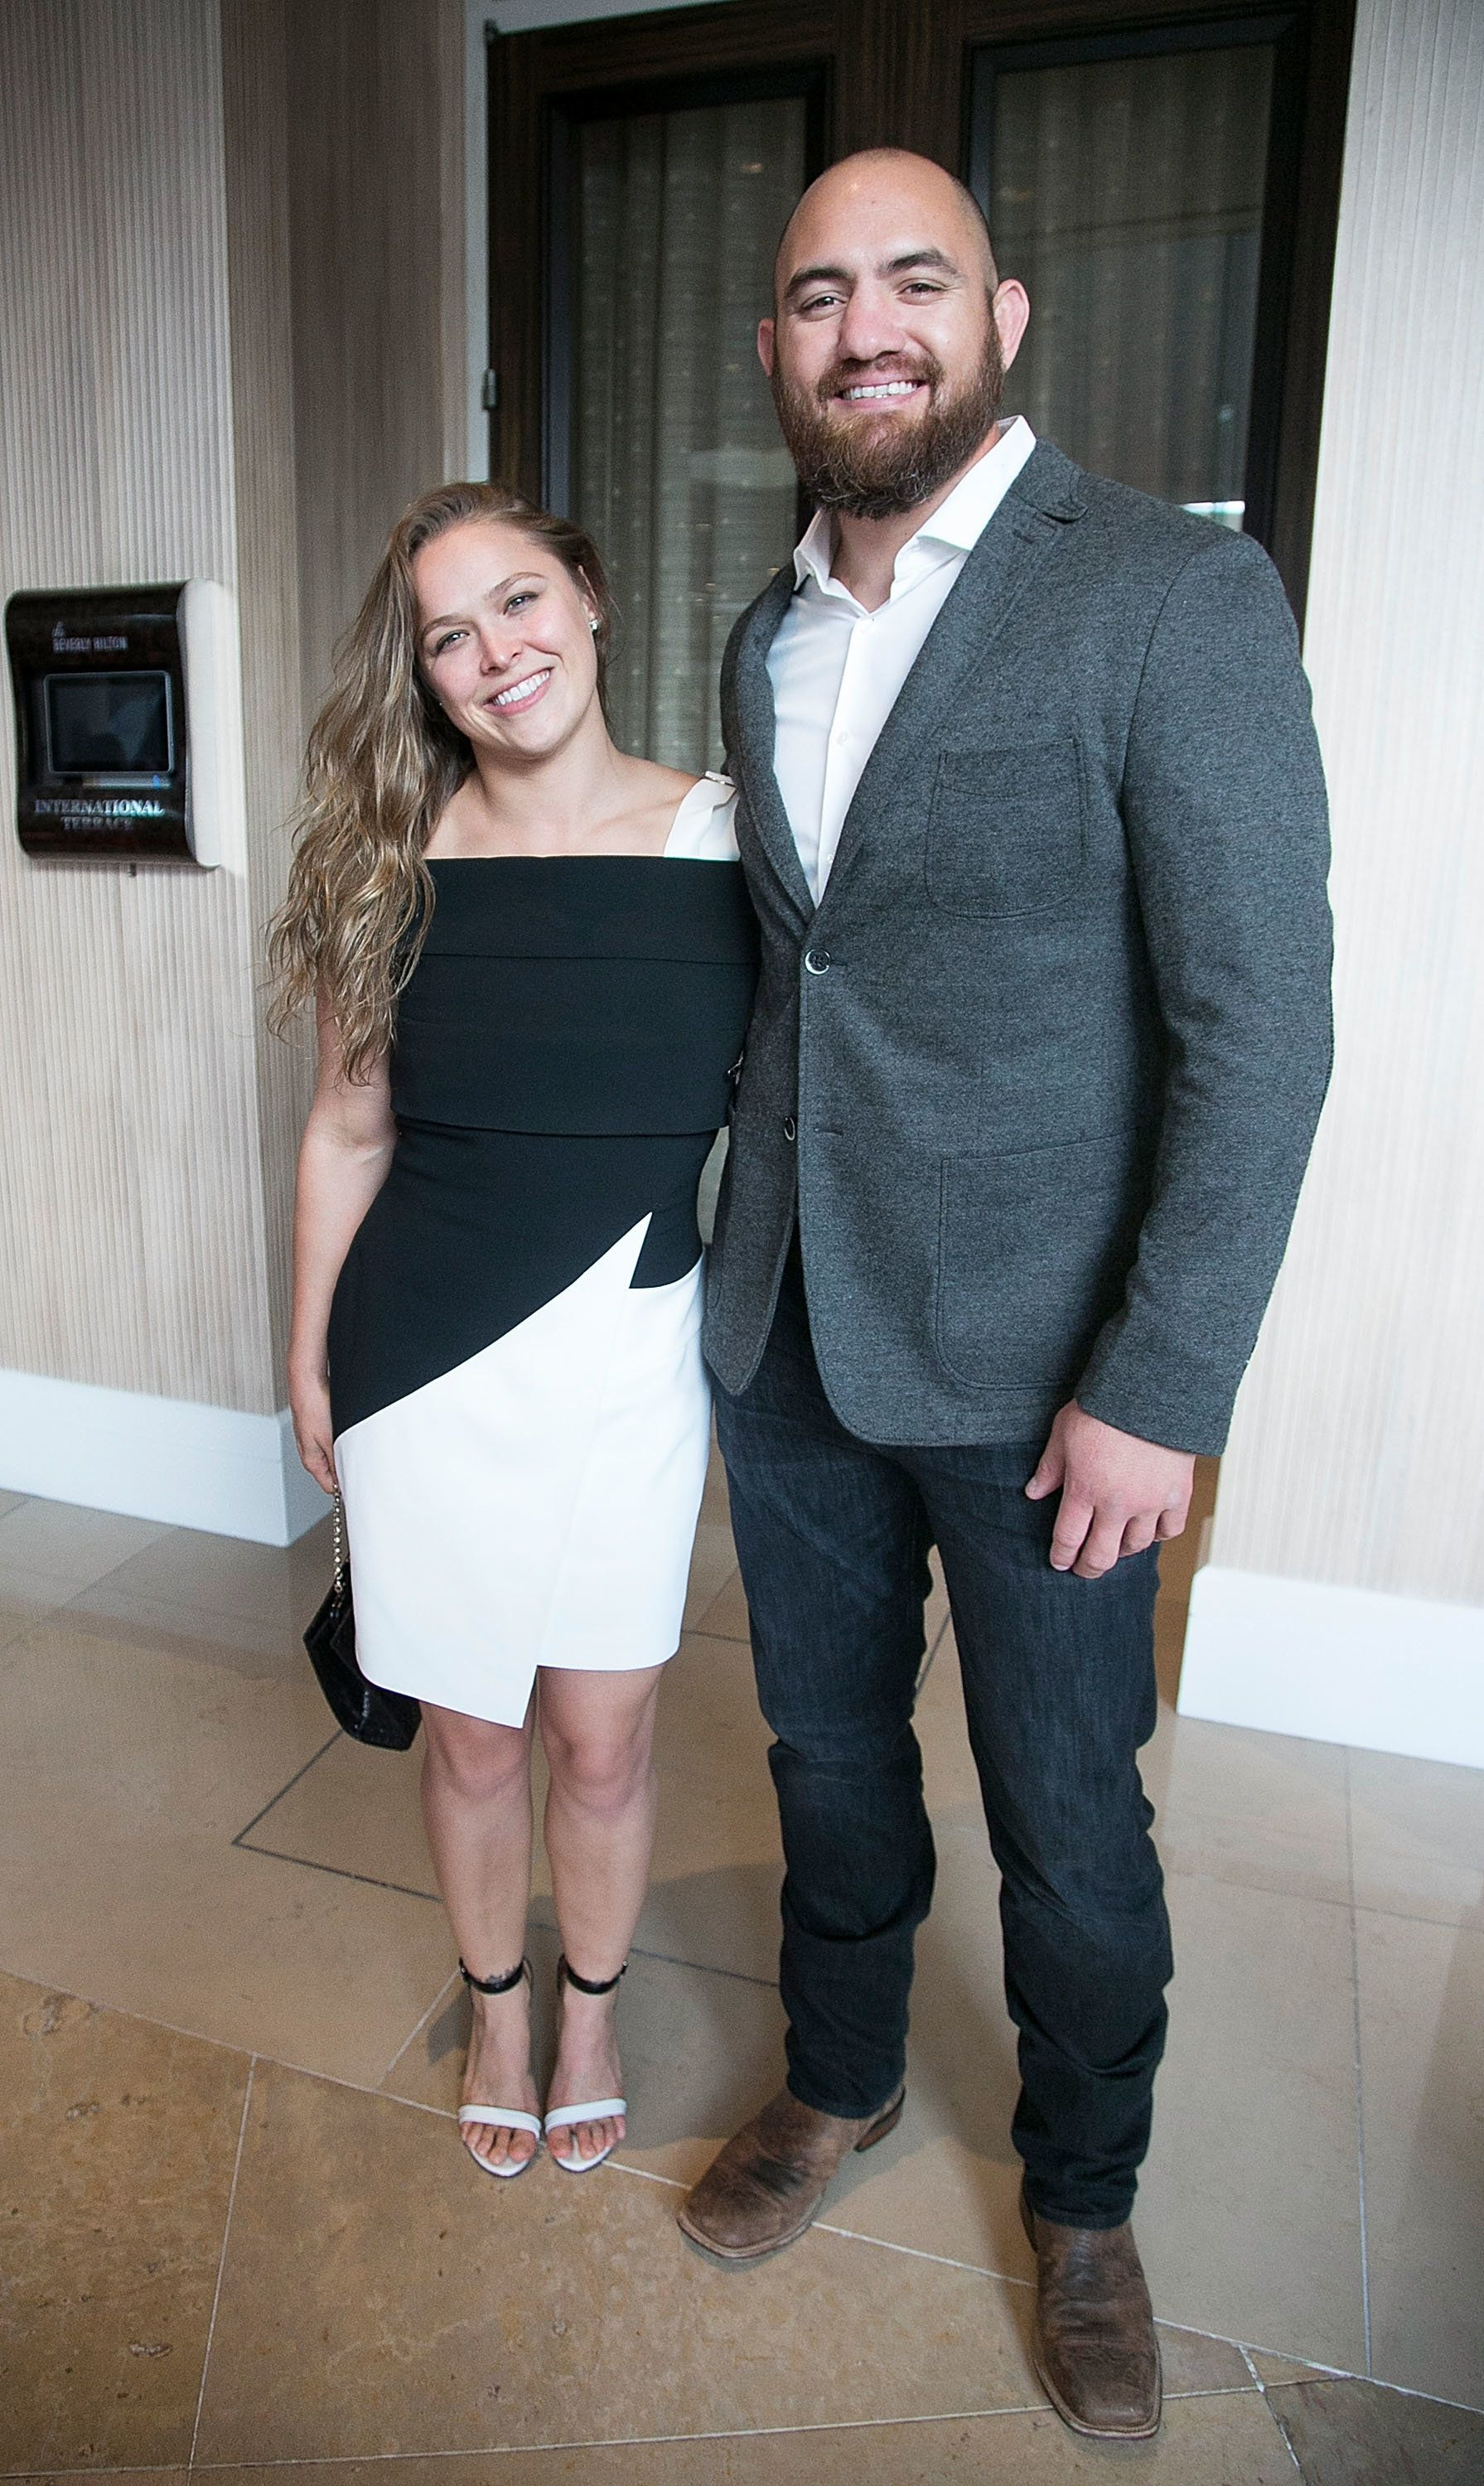 BEVERLY HILLS, CA - APRIL 28: Ronda Rousey and Travis Browne arrive for the 20th Anniversary Erasing The Stigma Leadership Awards at The Beverly Hilton Hotel on April 28, 2016 in Beverly Hills, California.  (Photo by Gabriel Olsen/WireImage)